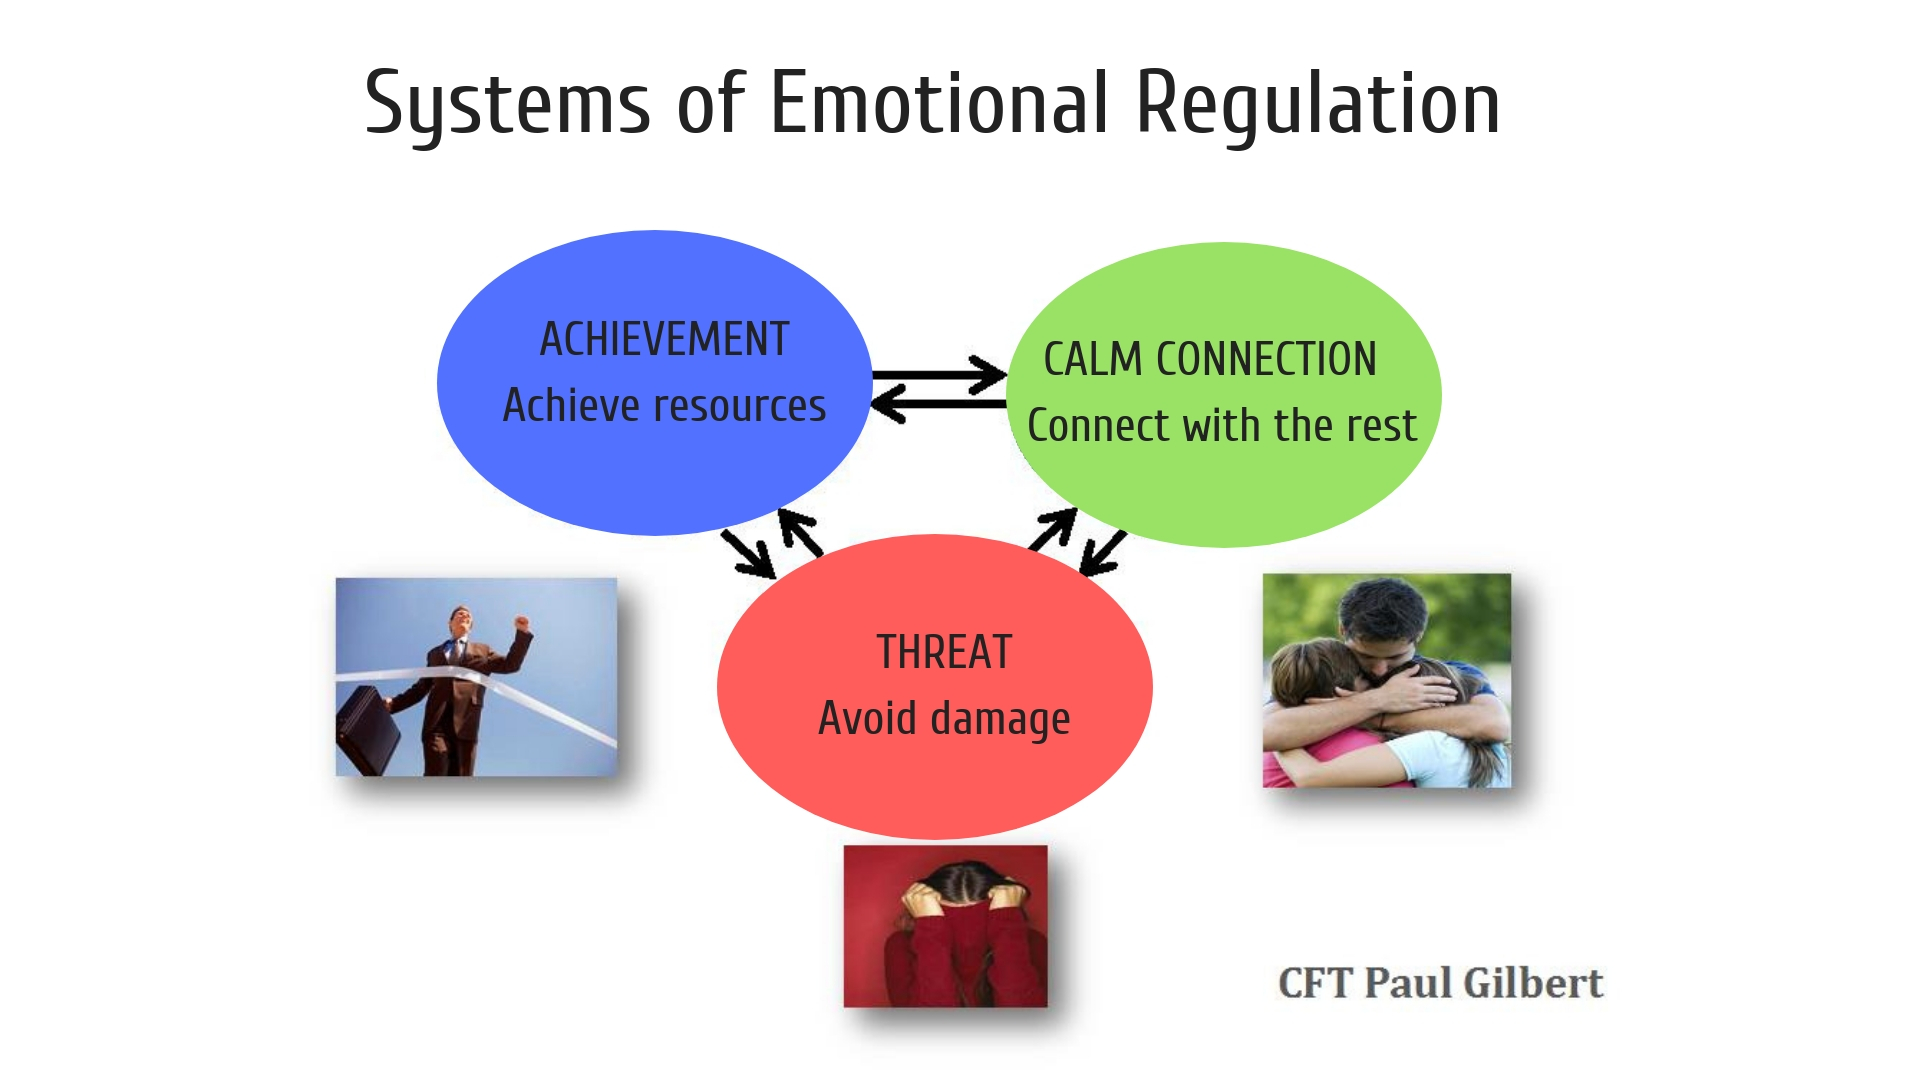 Systems of Emotional Regulation